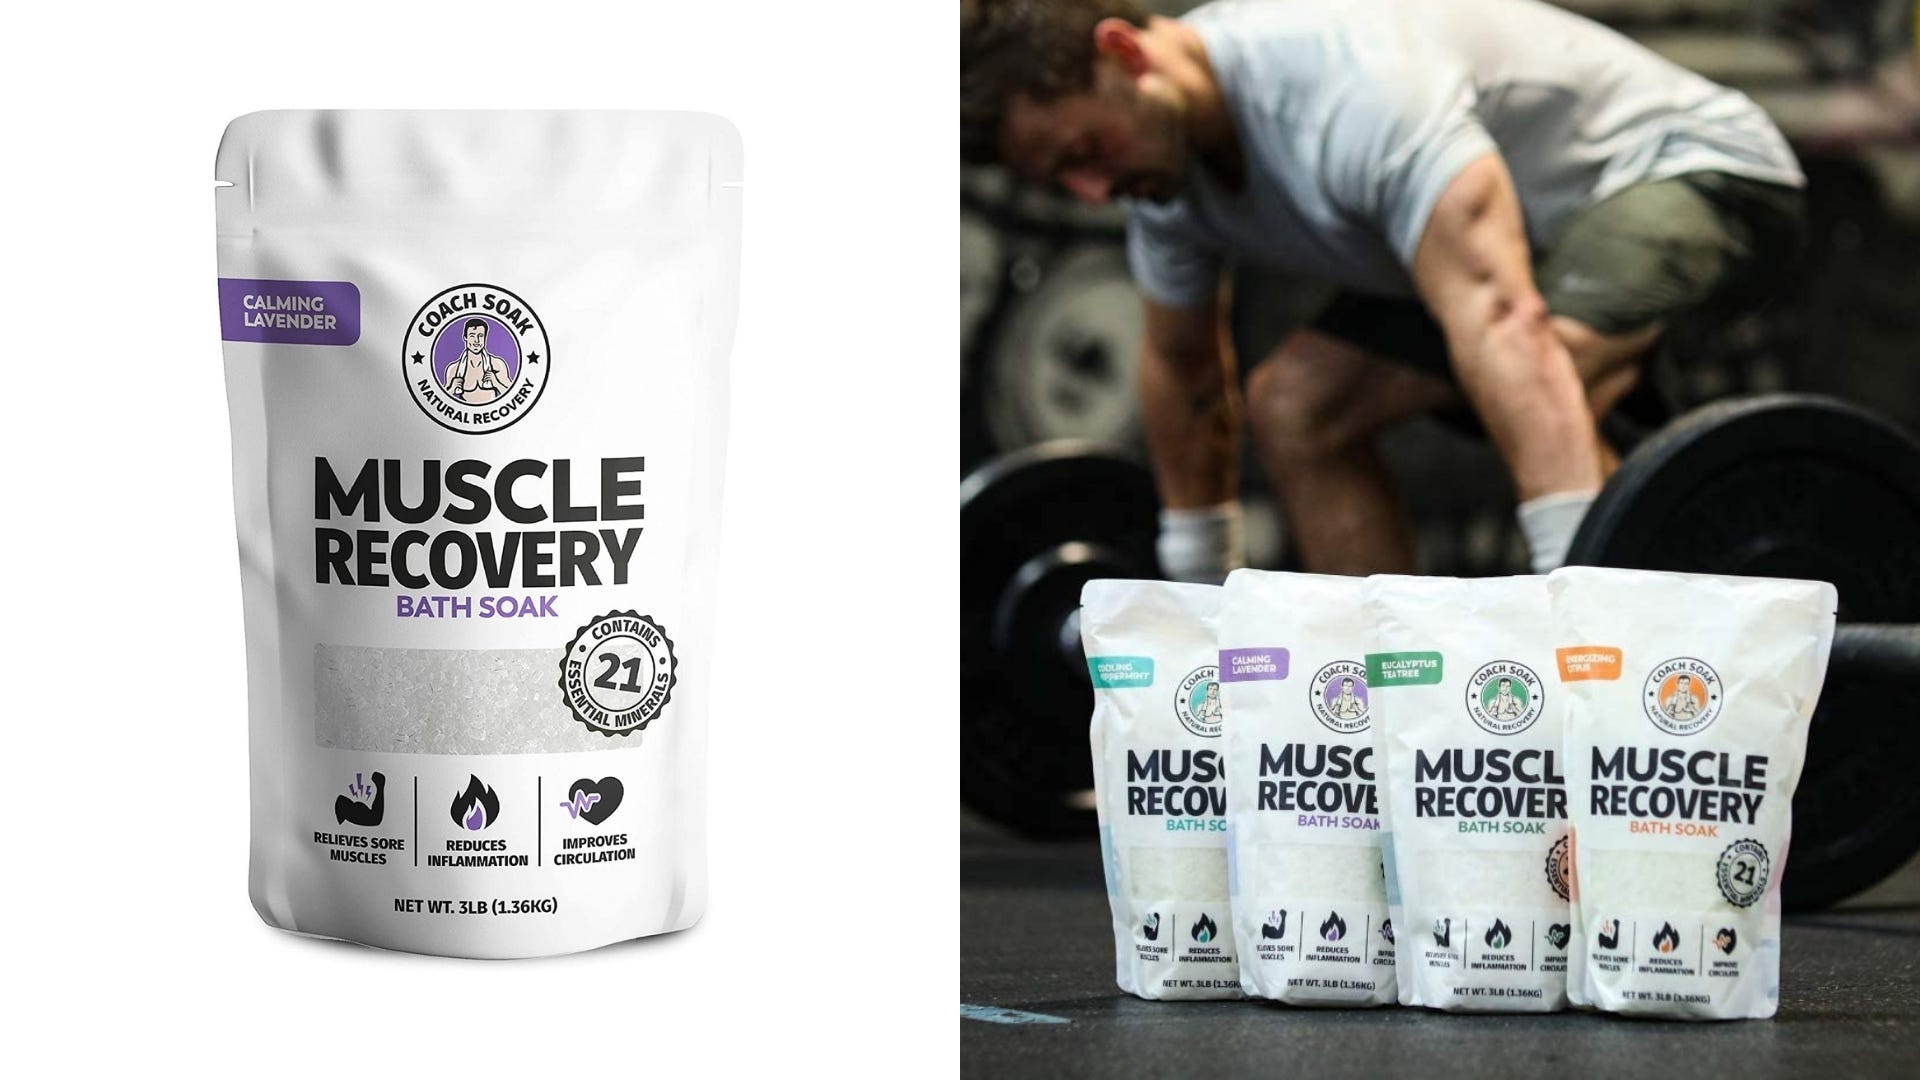 A bag of a muscle recovery bath soak and multiple bags sit in a gym in front of someone weightlifting.